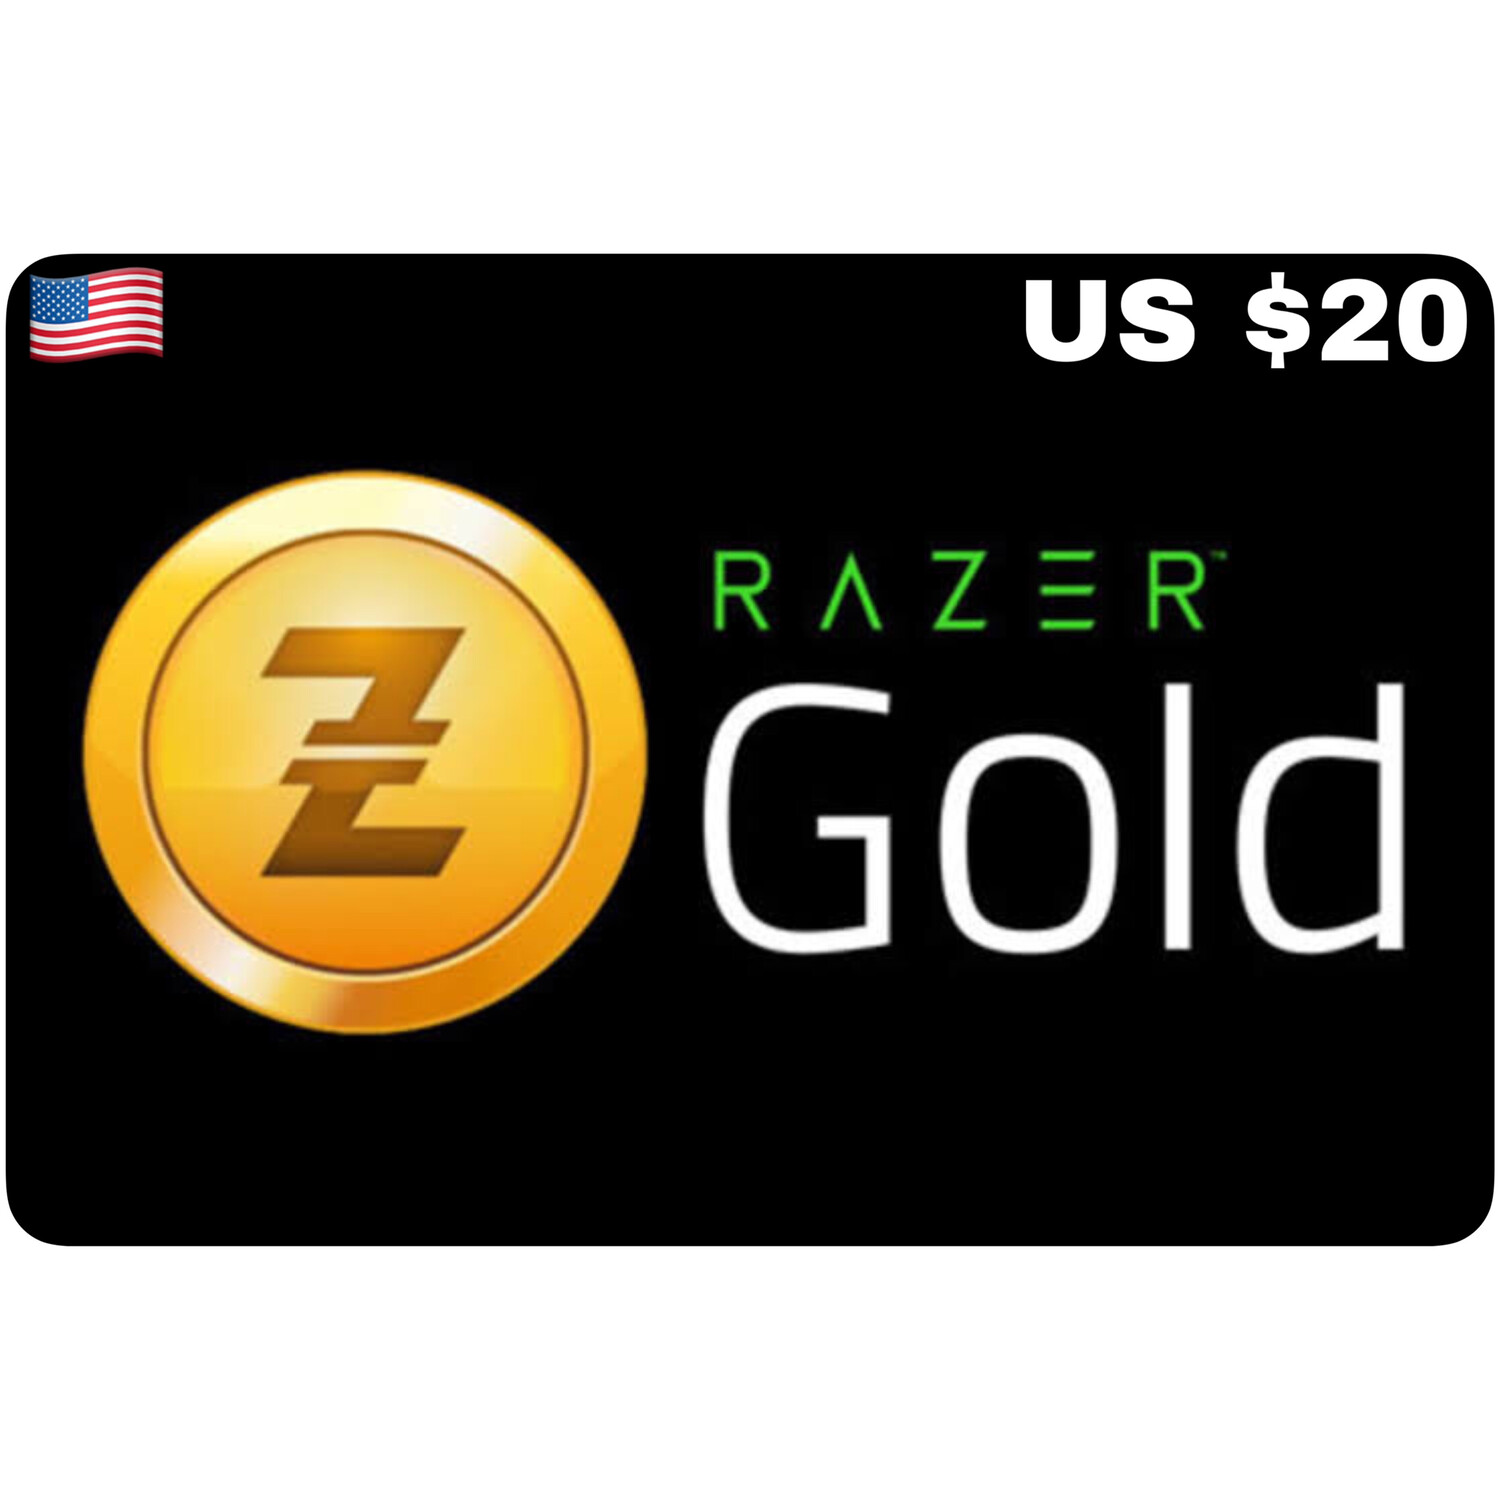 Razer Gold Pin US $20